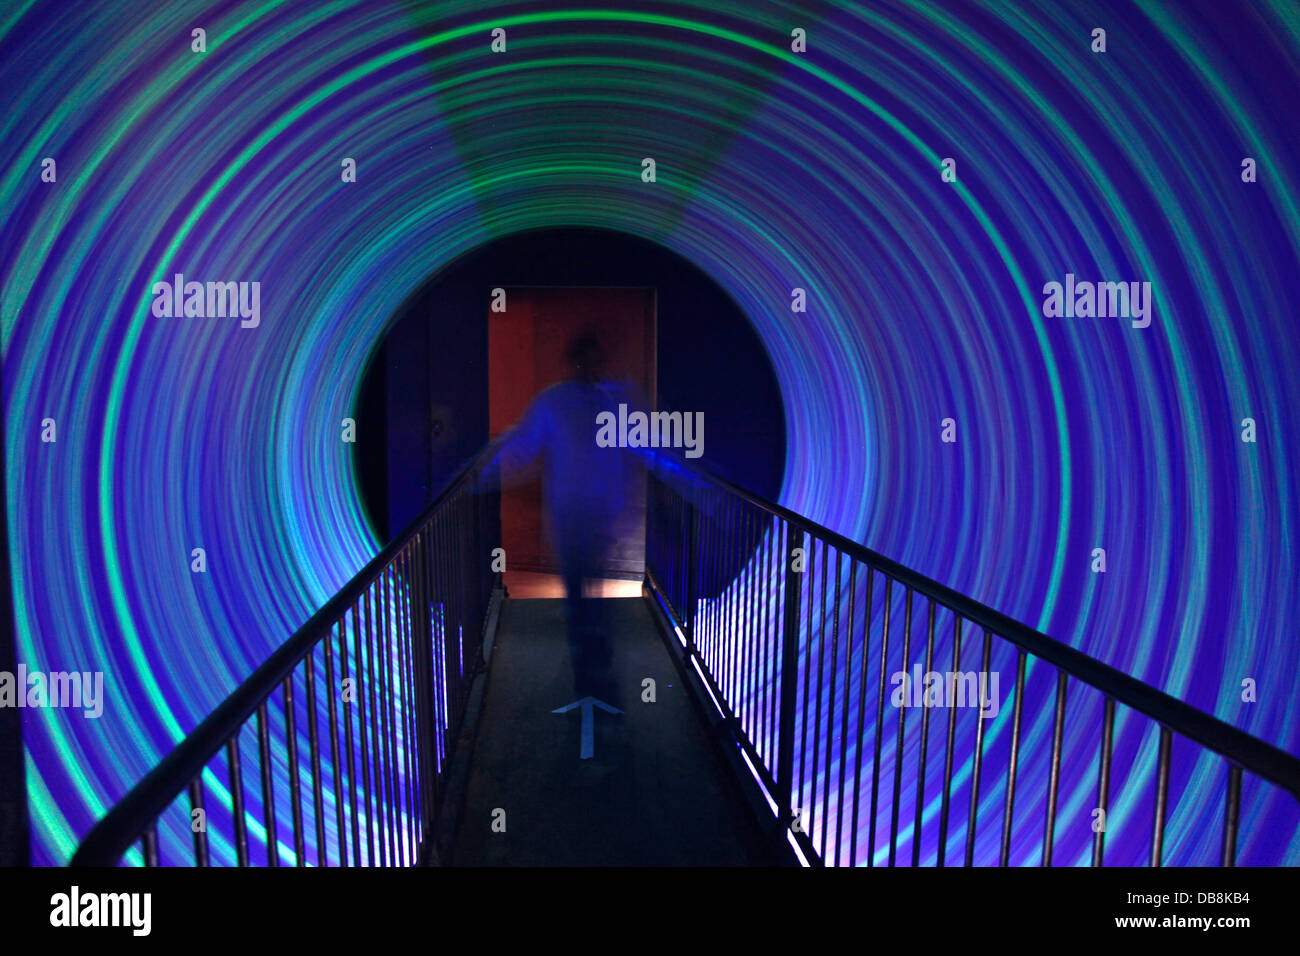 The Vortex which signifies the Big Bang Theory, at Maropeng Visitors Centre at Cradle of Humankind World Heritage - Stock Image